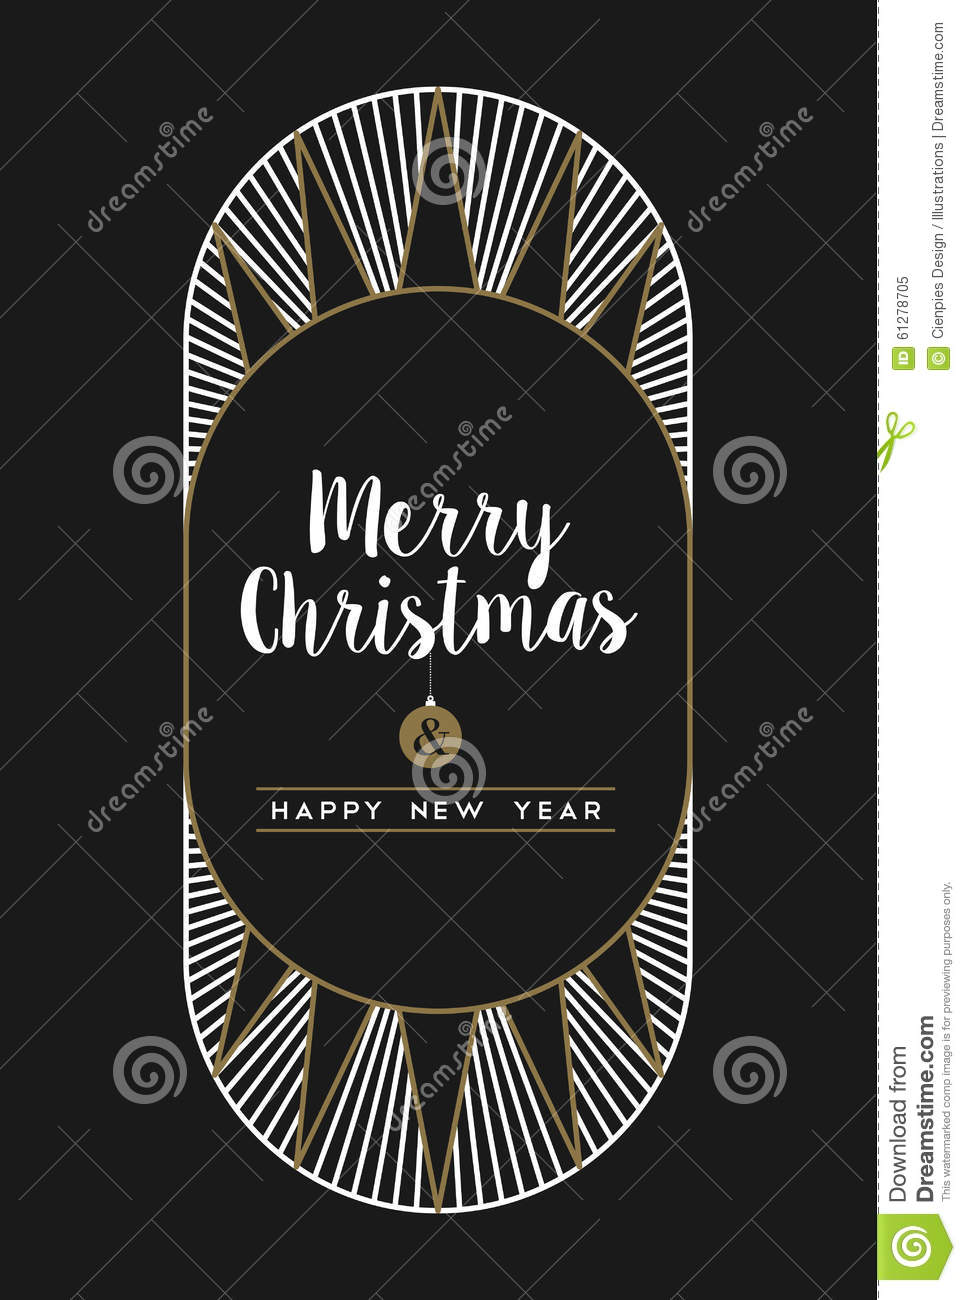 merry christmas happy new year art deco frame card